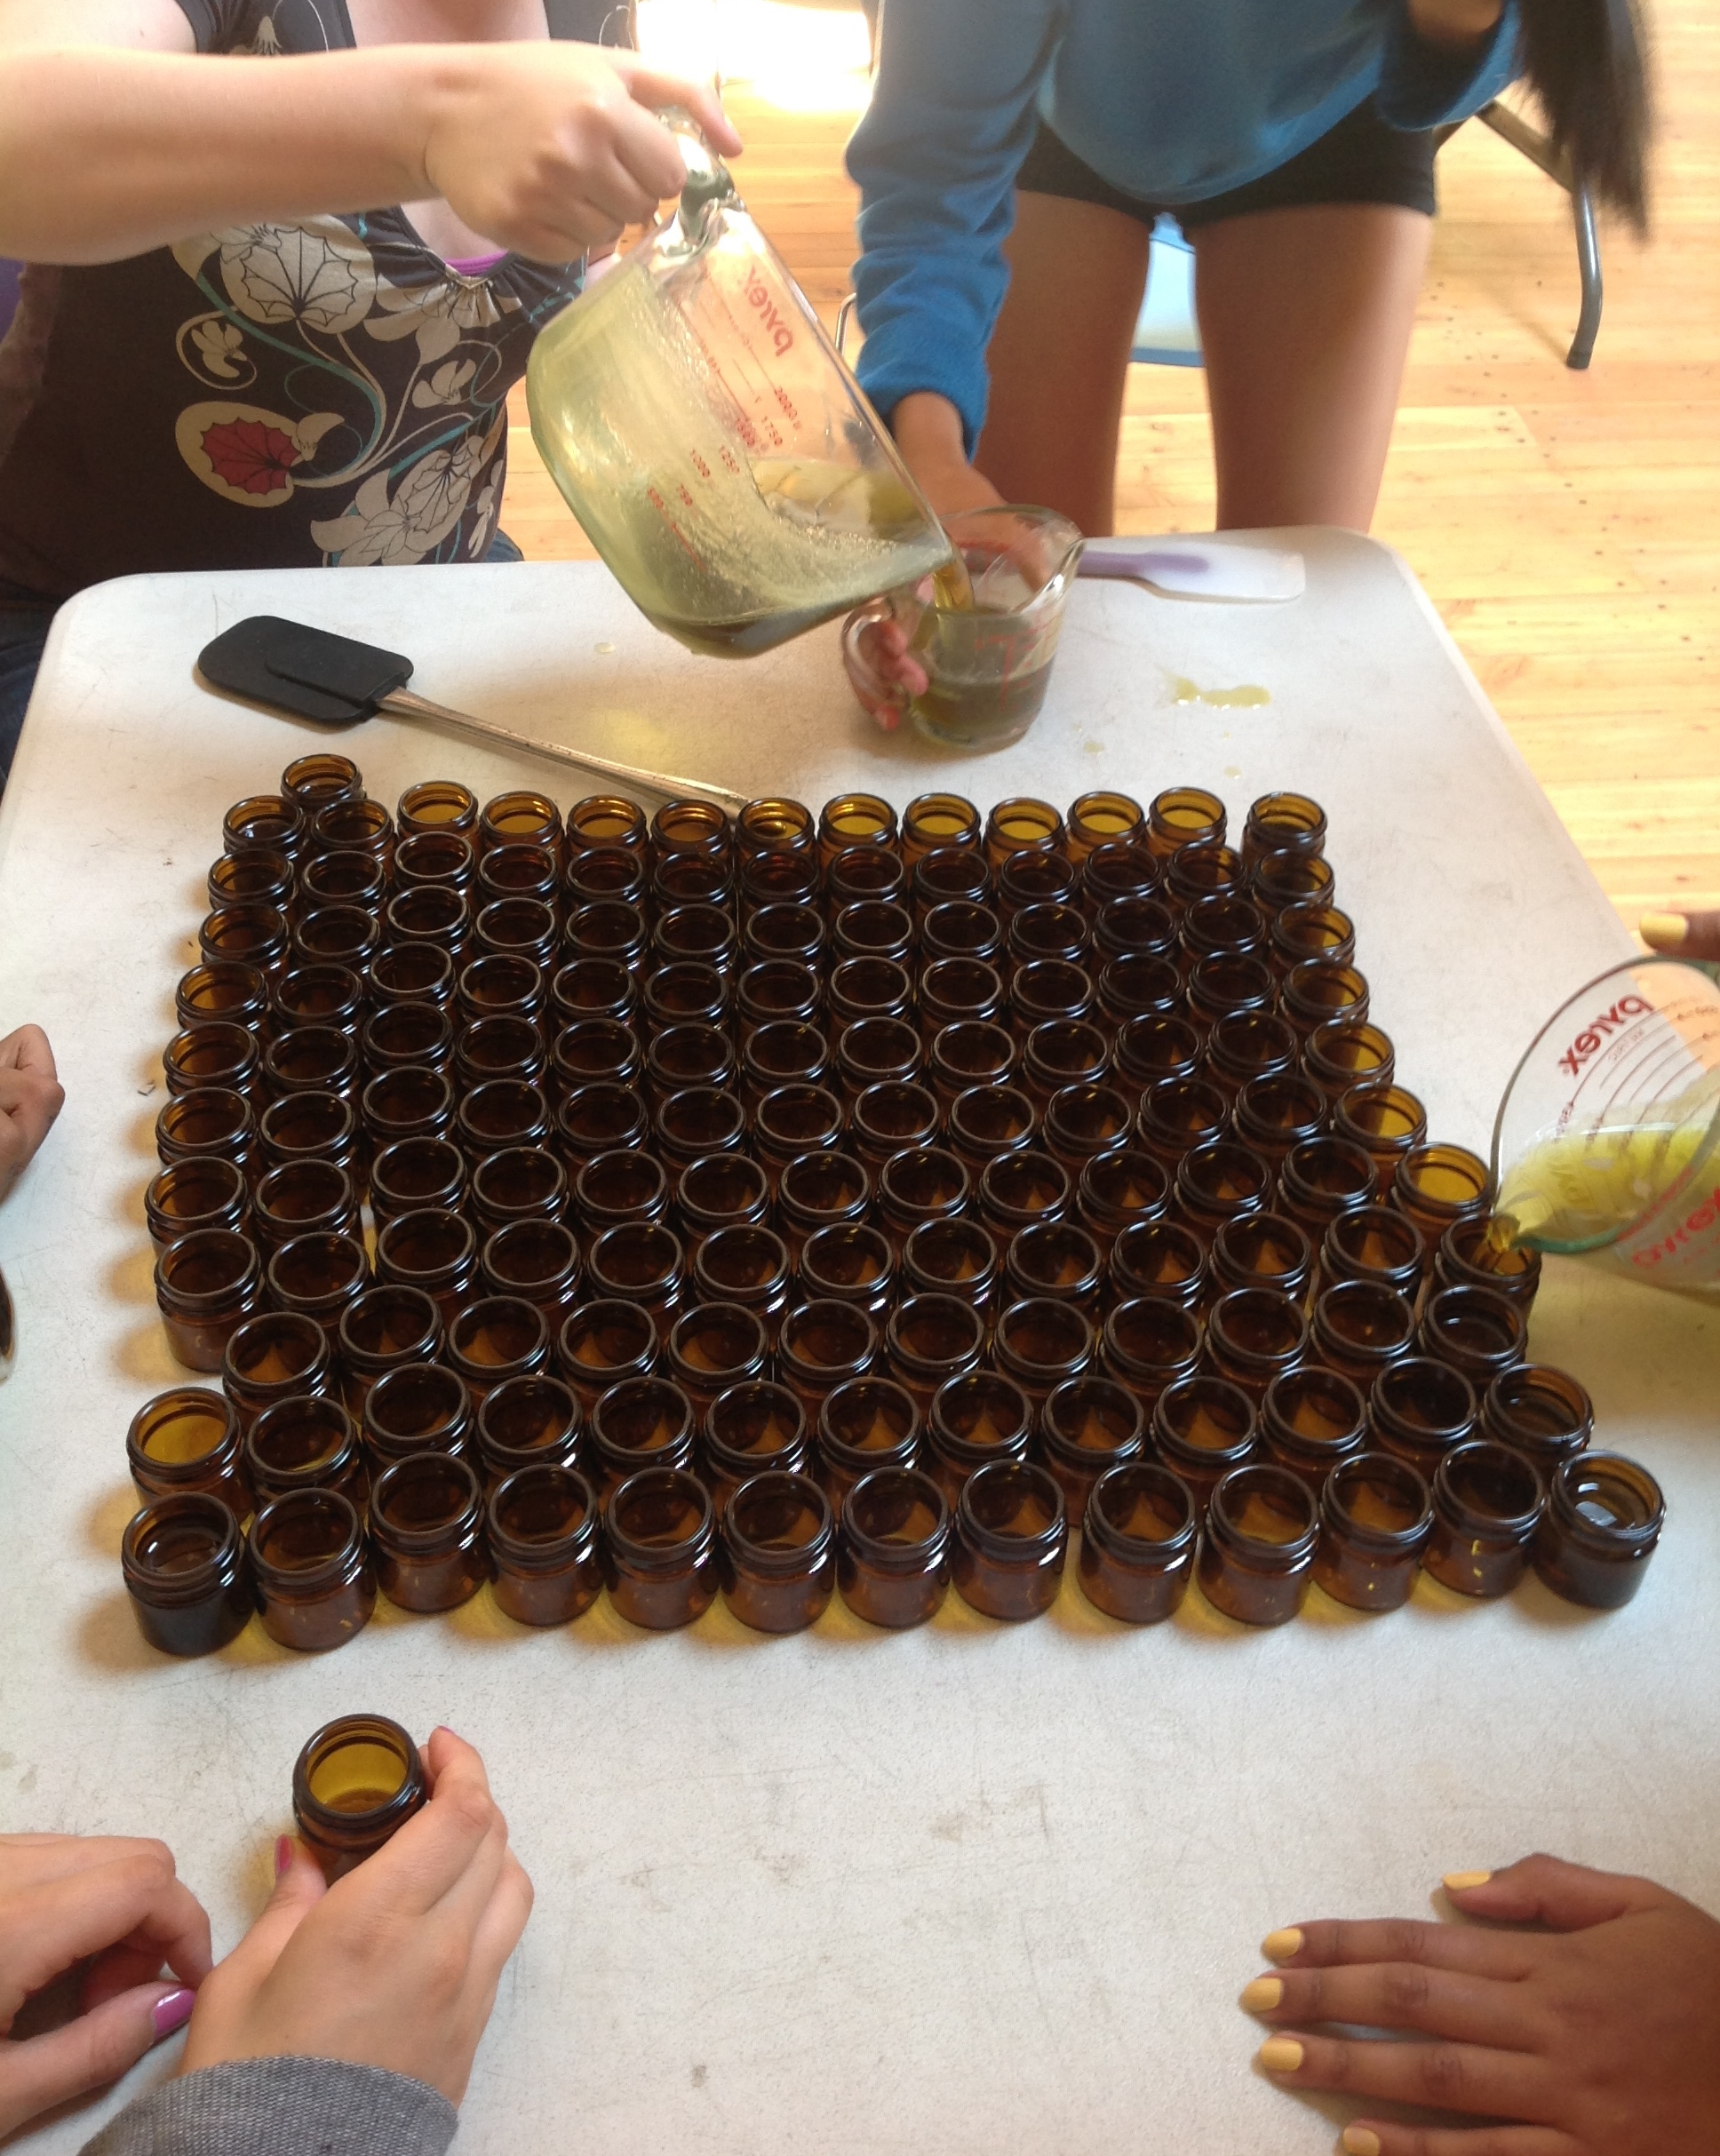 Many hands working together - making salve with natural medicines found throughout the farm